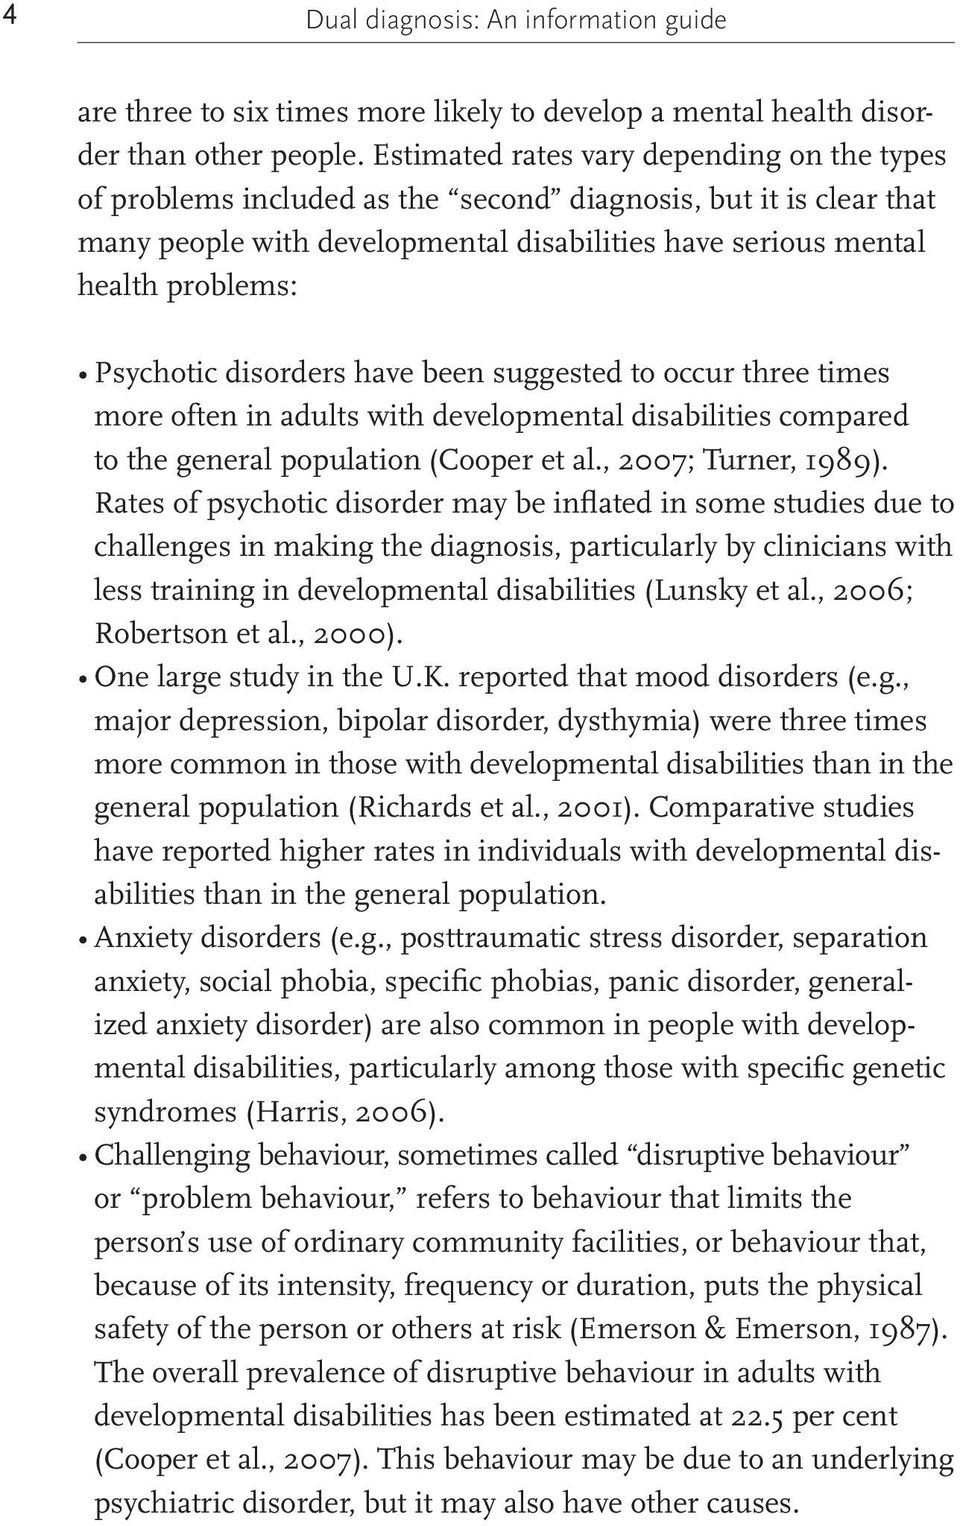 Psychotic disorders have been suggested to occur three times more often in adults with developmental disabilities compared to the general population (Cooper et al., 2007; Turner, 1989).